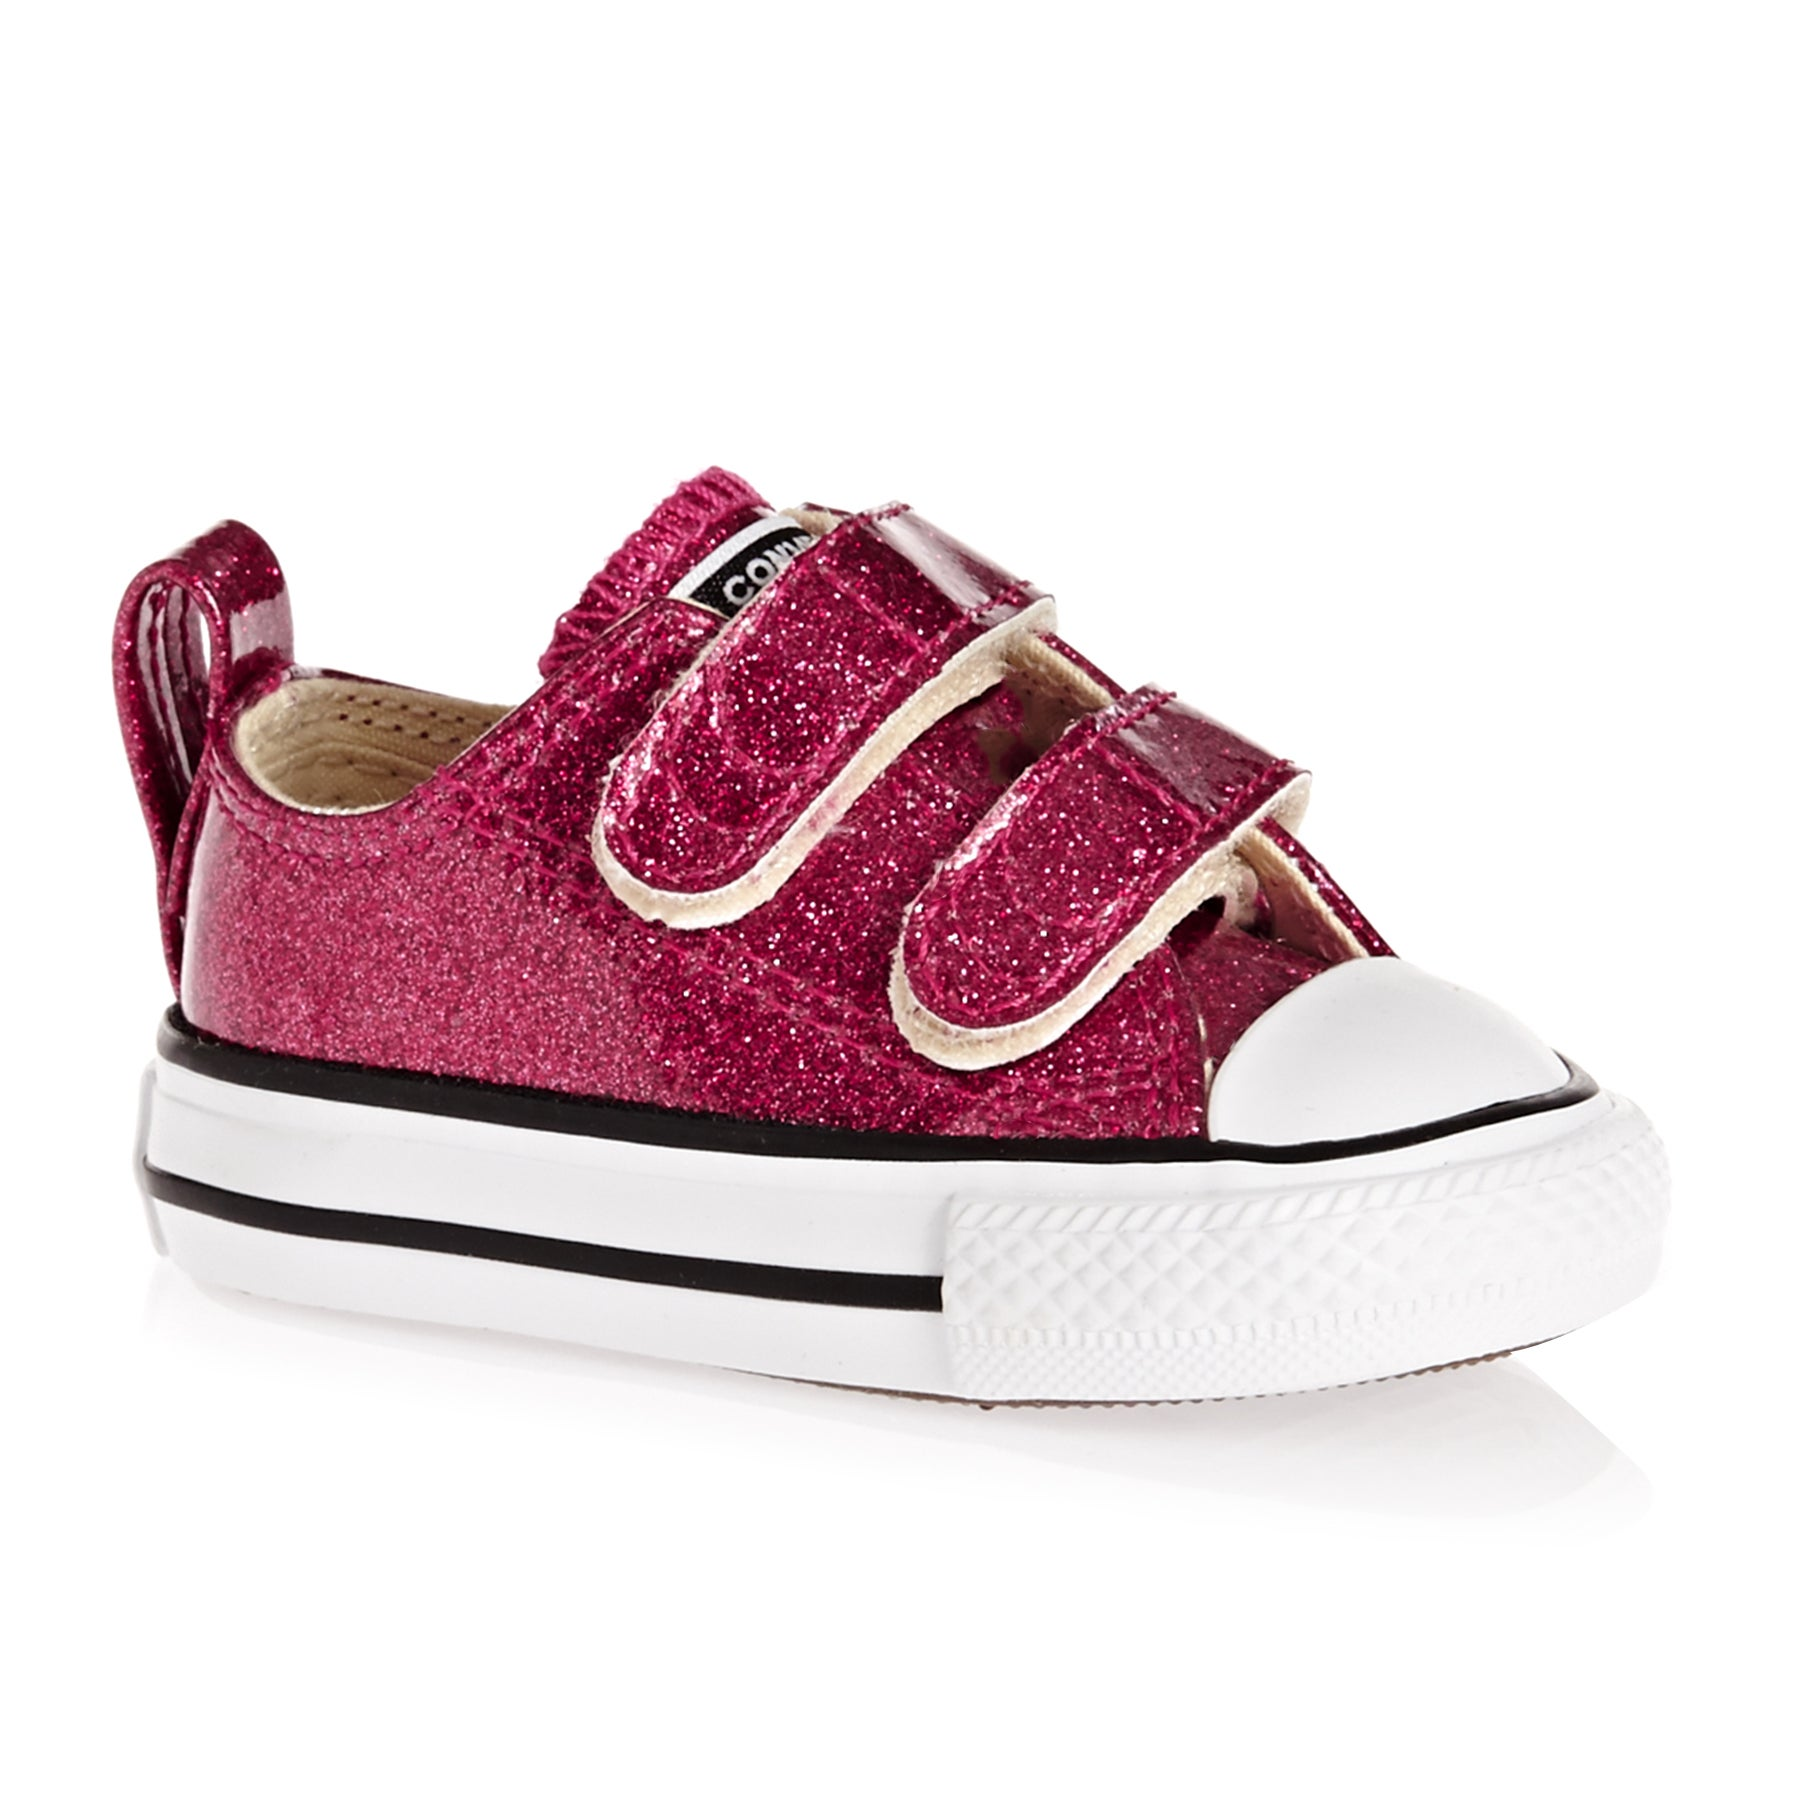 e6ab44941d0d Converse Chuck Taylor All Star 2v Ox Glitter Baby Shoes available ...